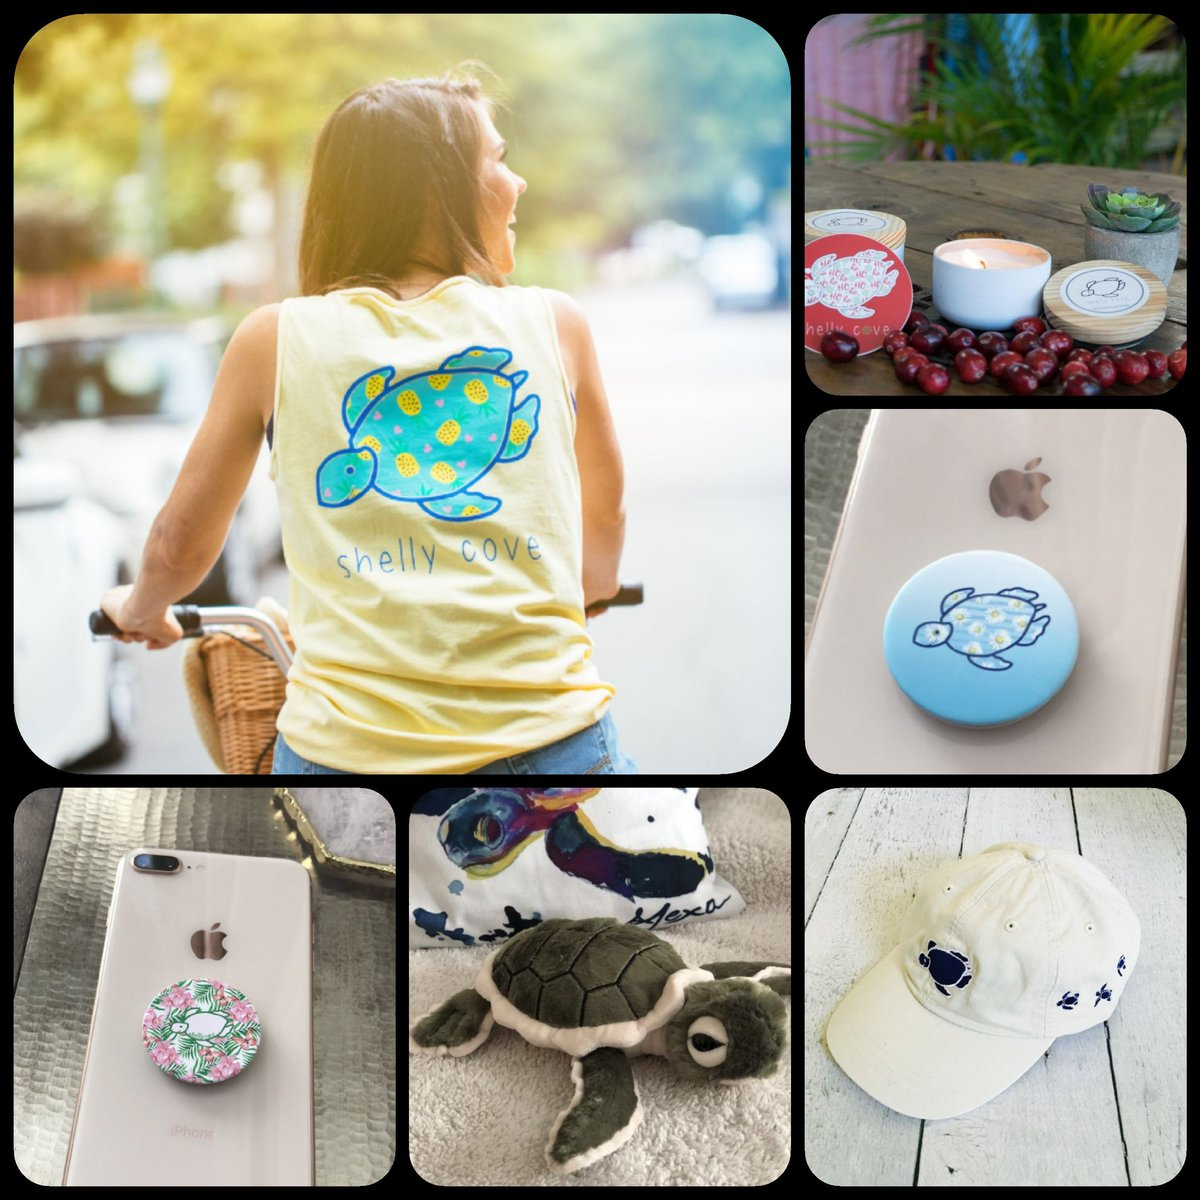 c9b781117fc1 Click the link, choose your #goodies & use my personal code REIVA10 to get  10%OFF! #BlackFriday #under20 #discounts #savetheturtles #causes #love ...